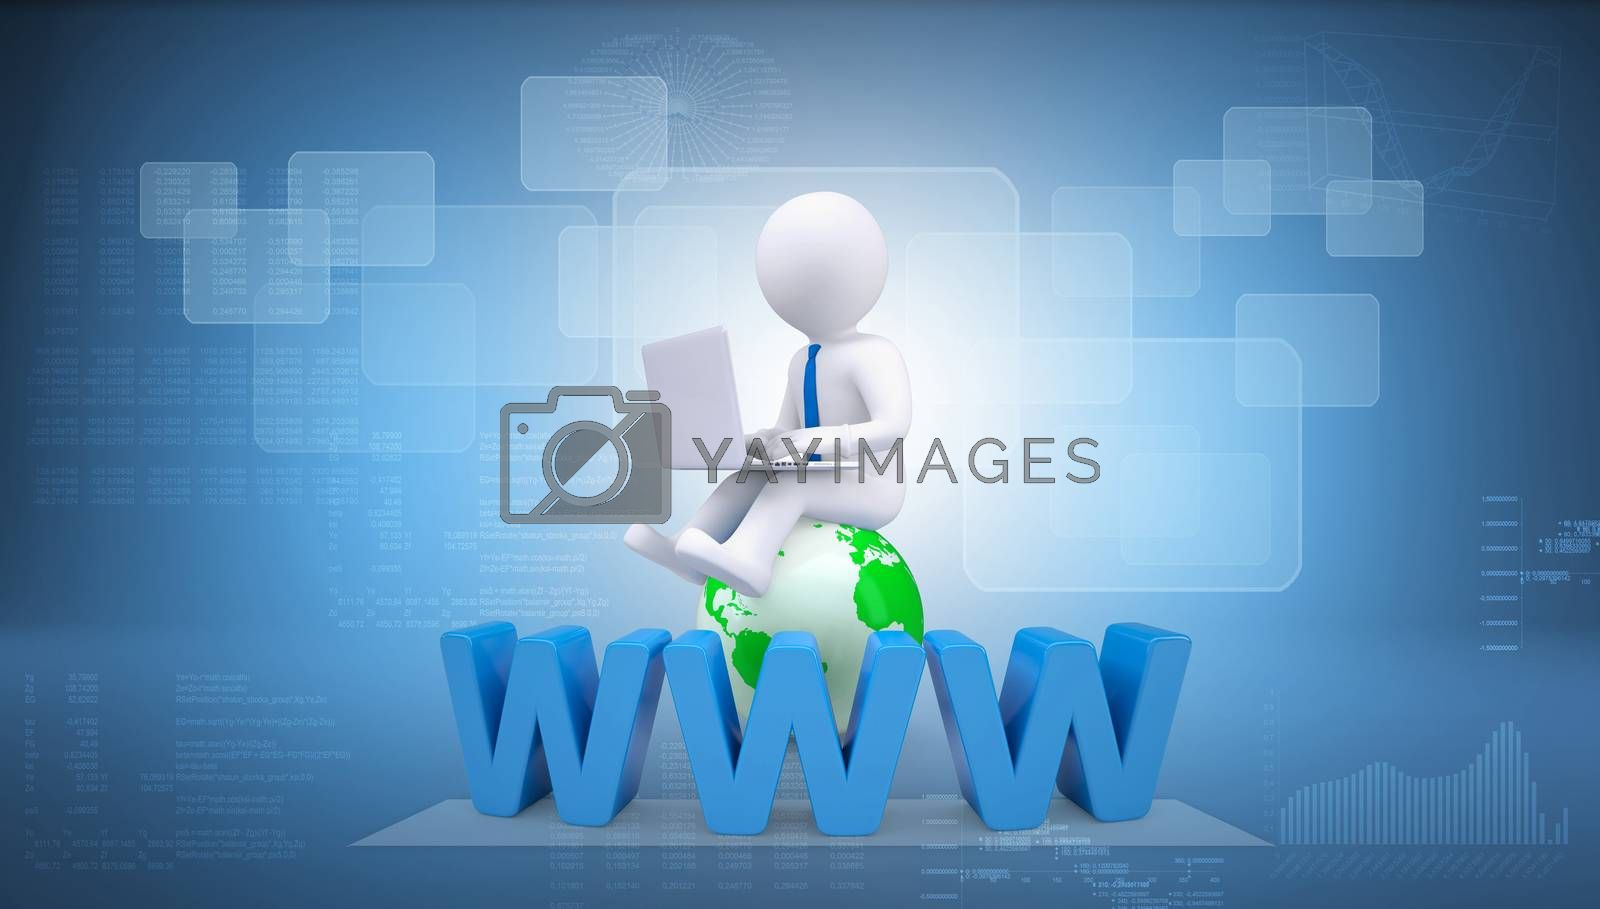 Graphic man with tie sitting on globe. Background of letters www and virtual screens